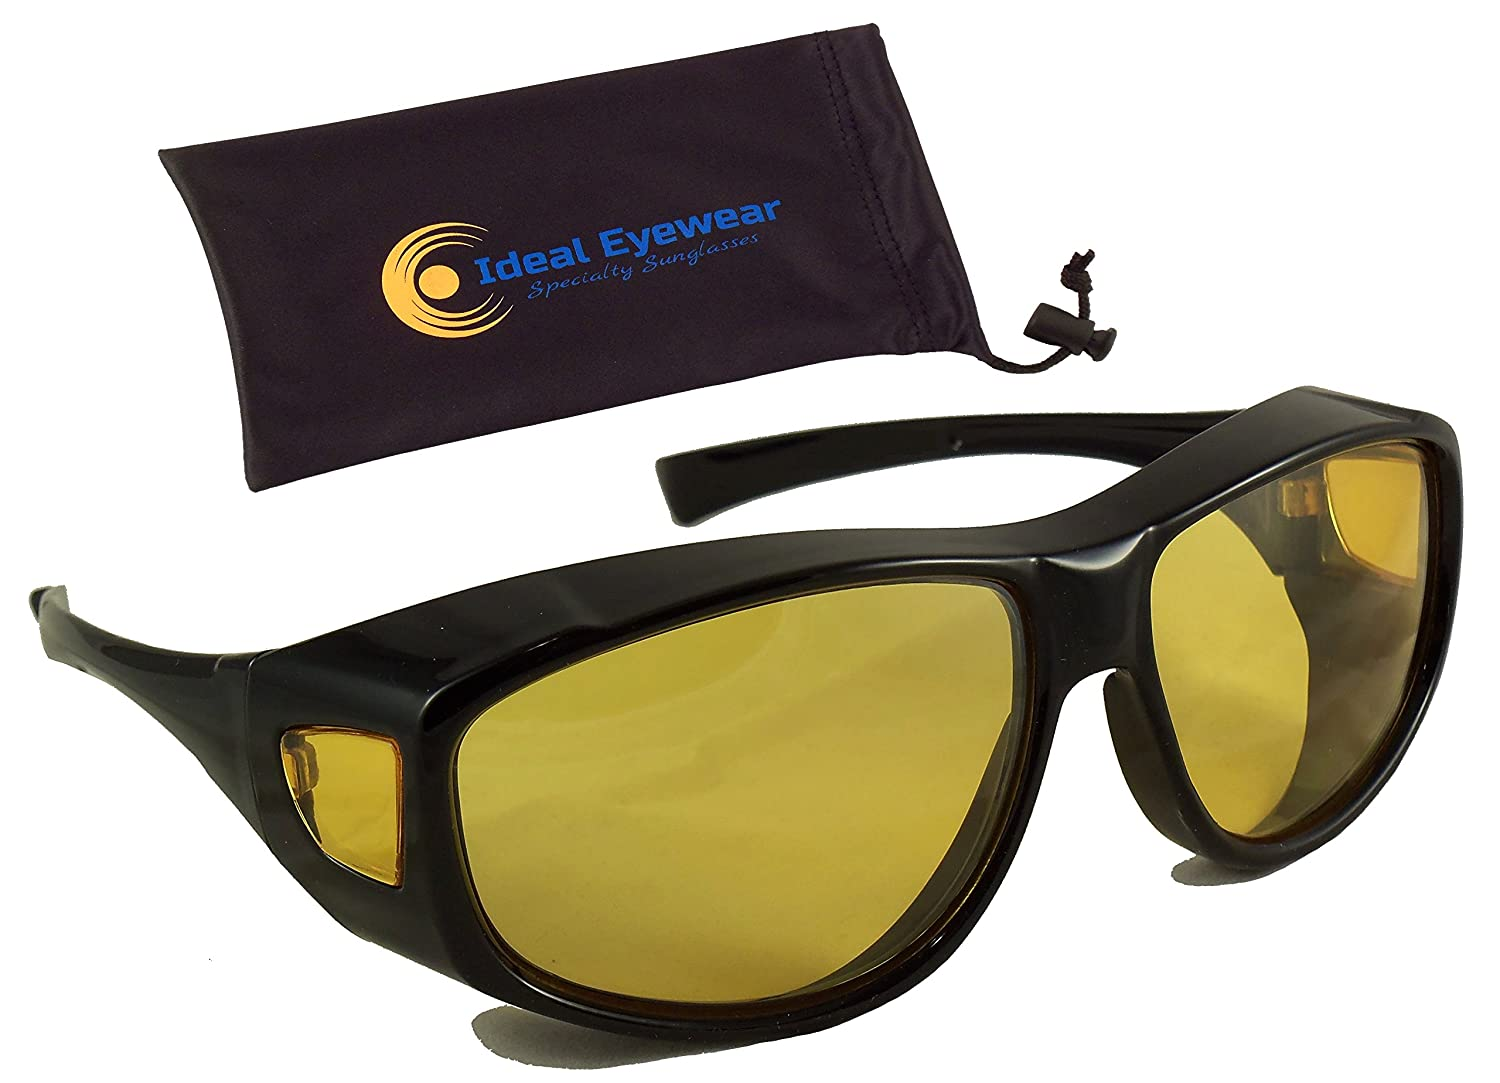 Amazon.com : Night Driving Fit Over Glasses by Ideal Eyewear - Wear ...